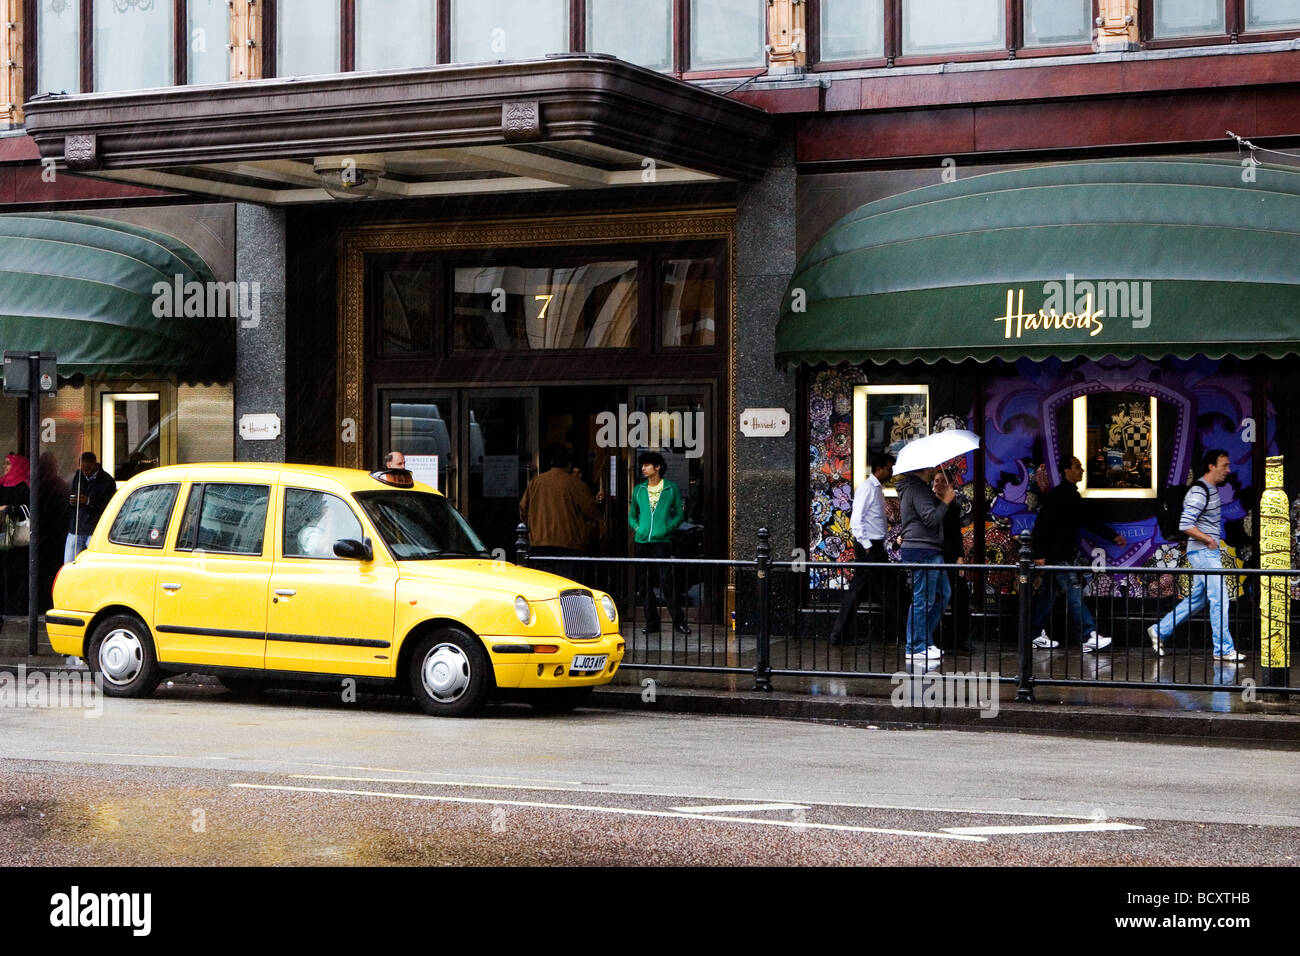 Yellow Cab outside Harrods - Stock Image